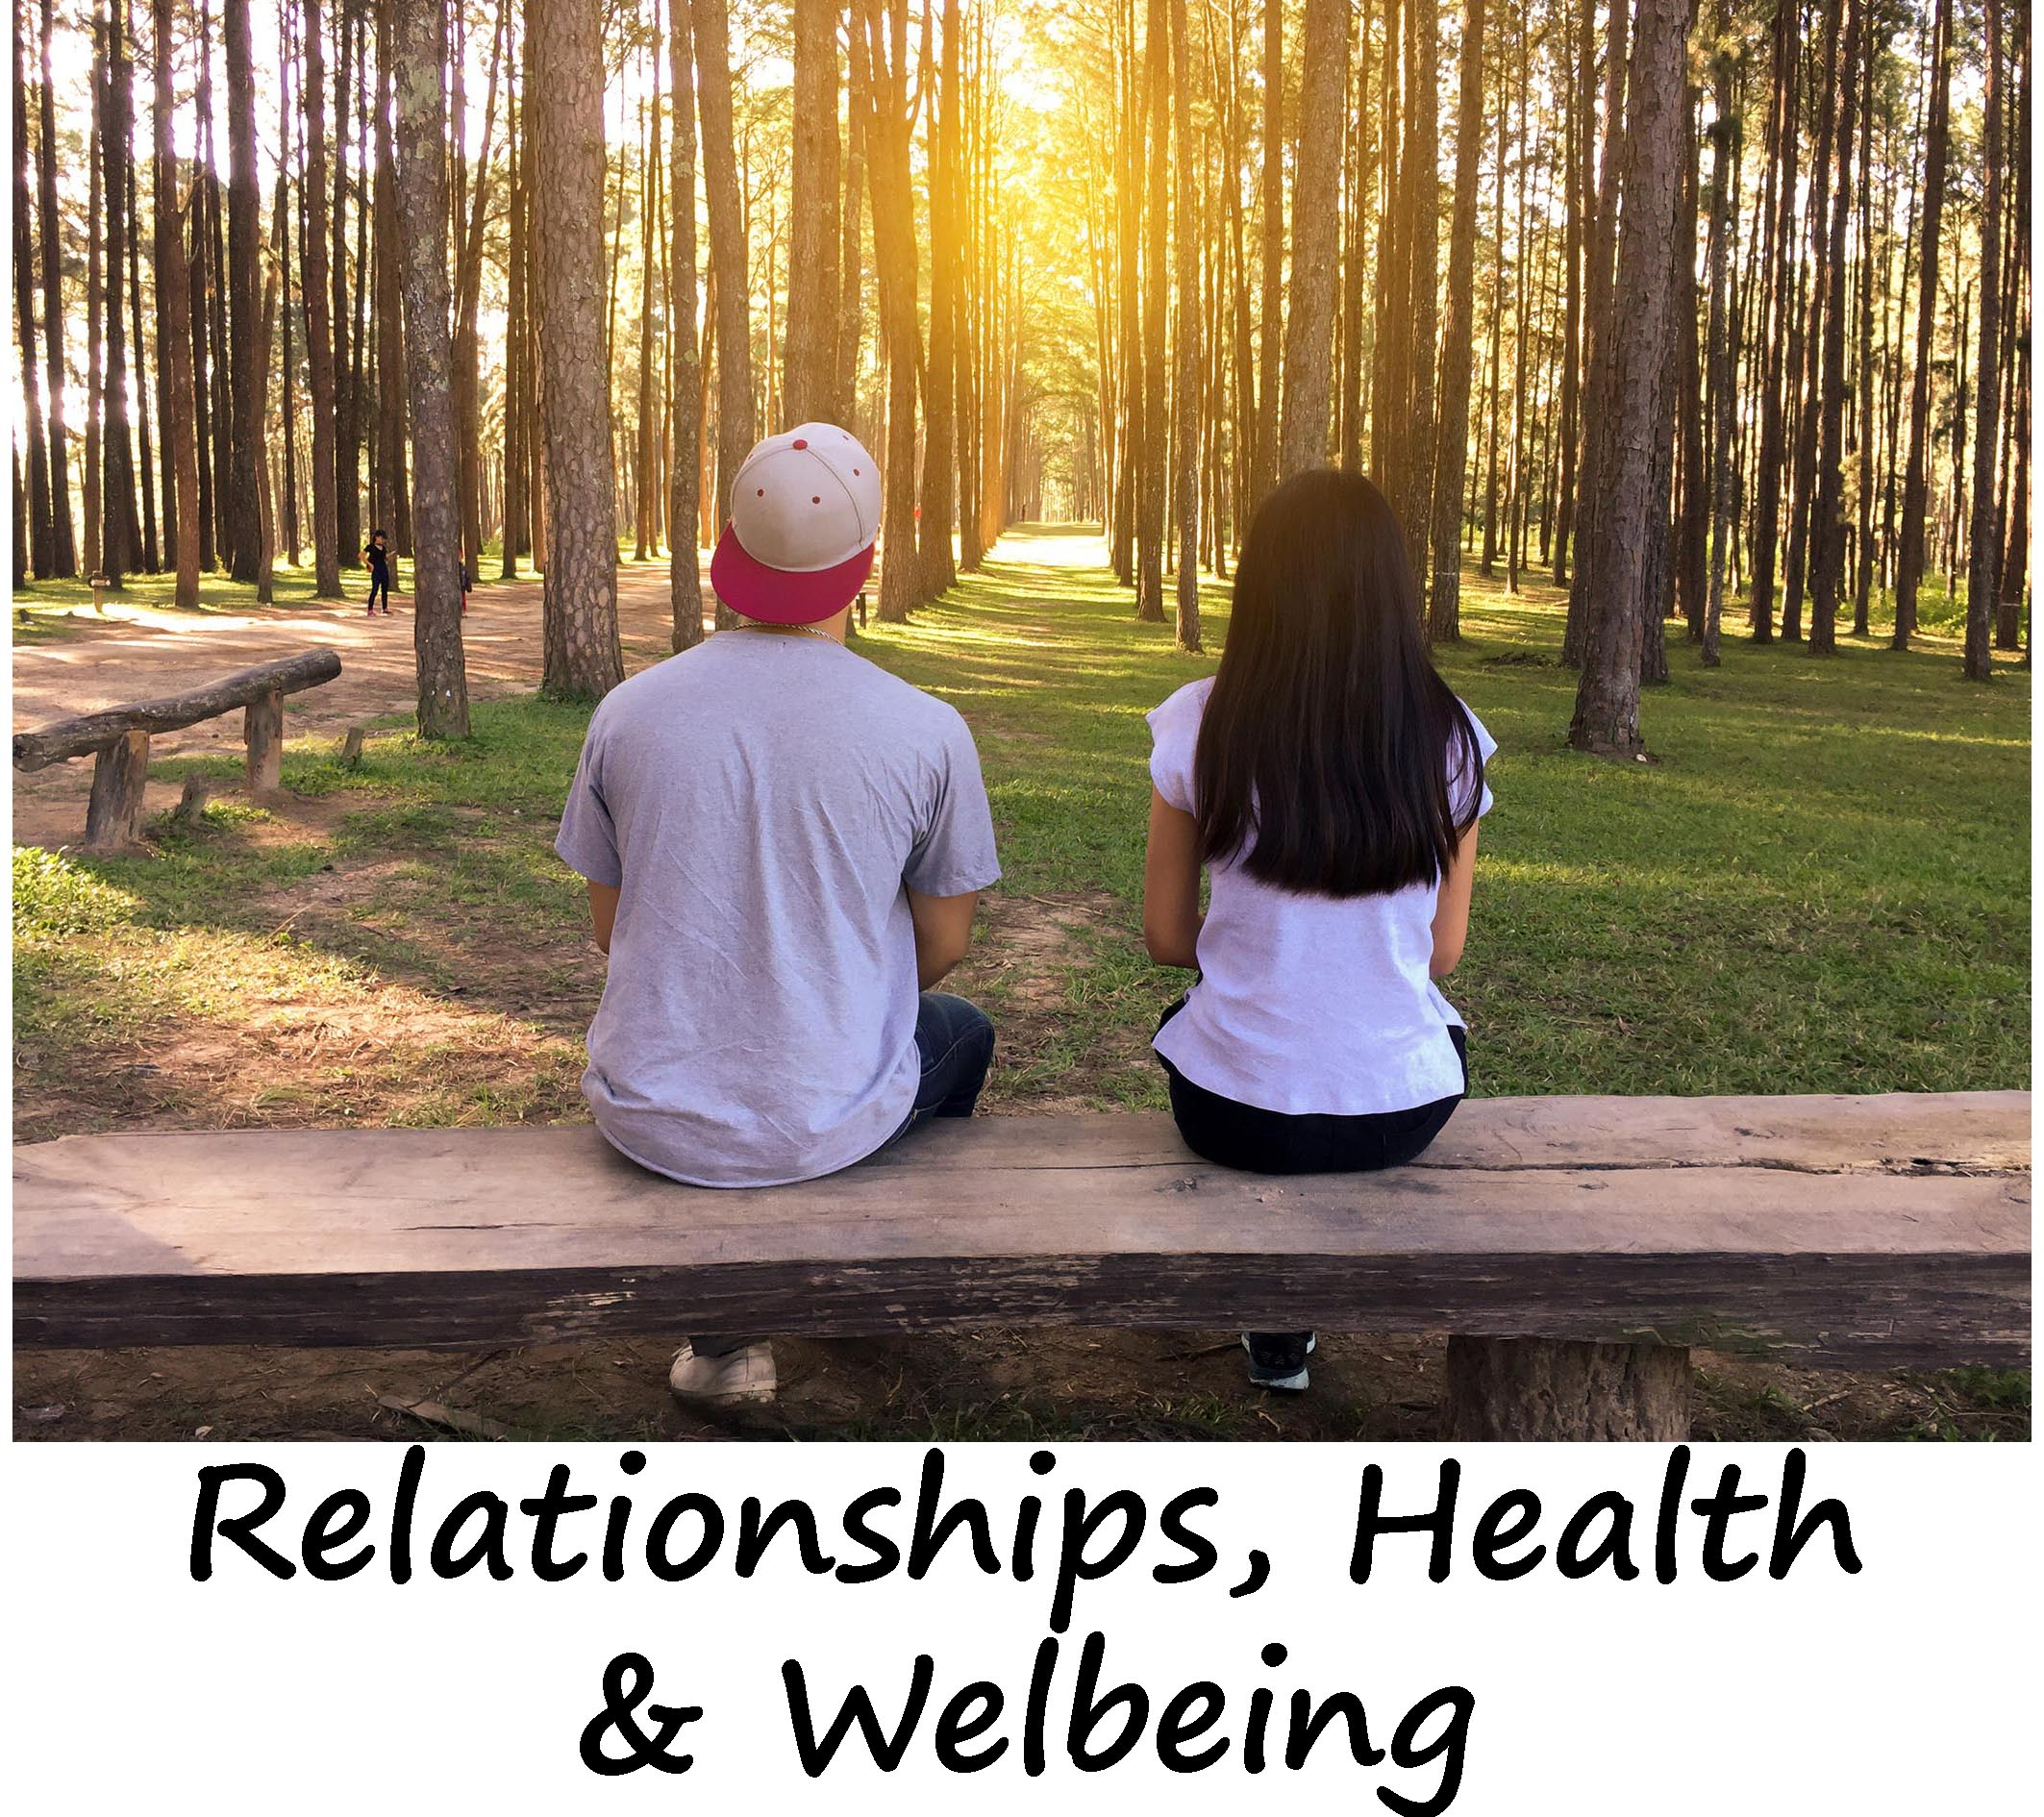 Link to Relationships, Health and Wellbeing